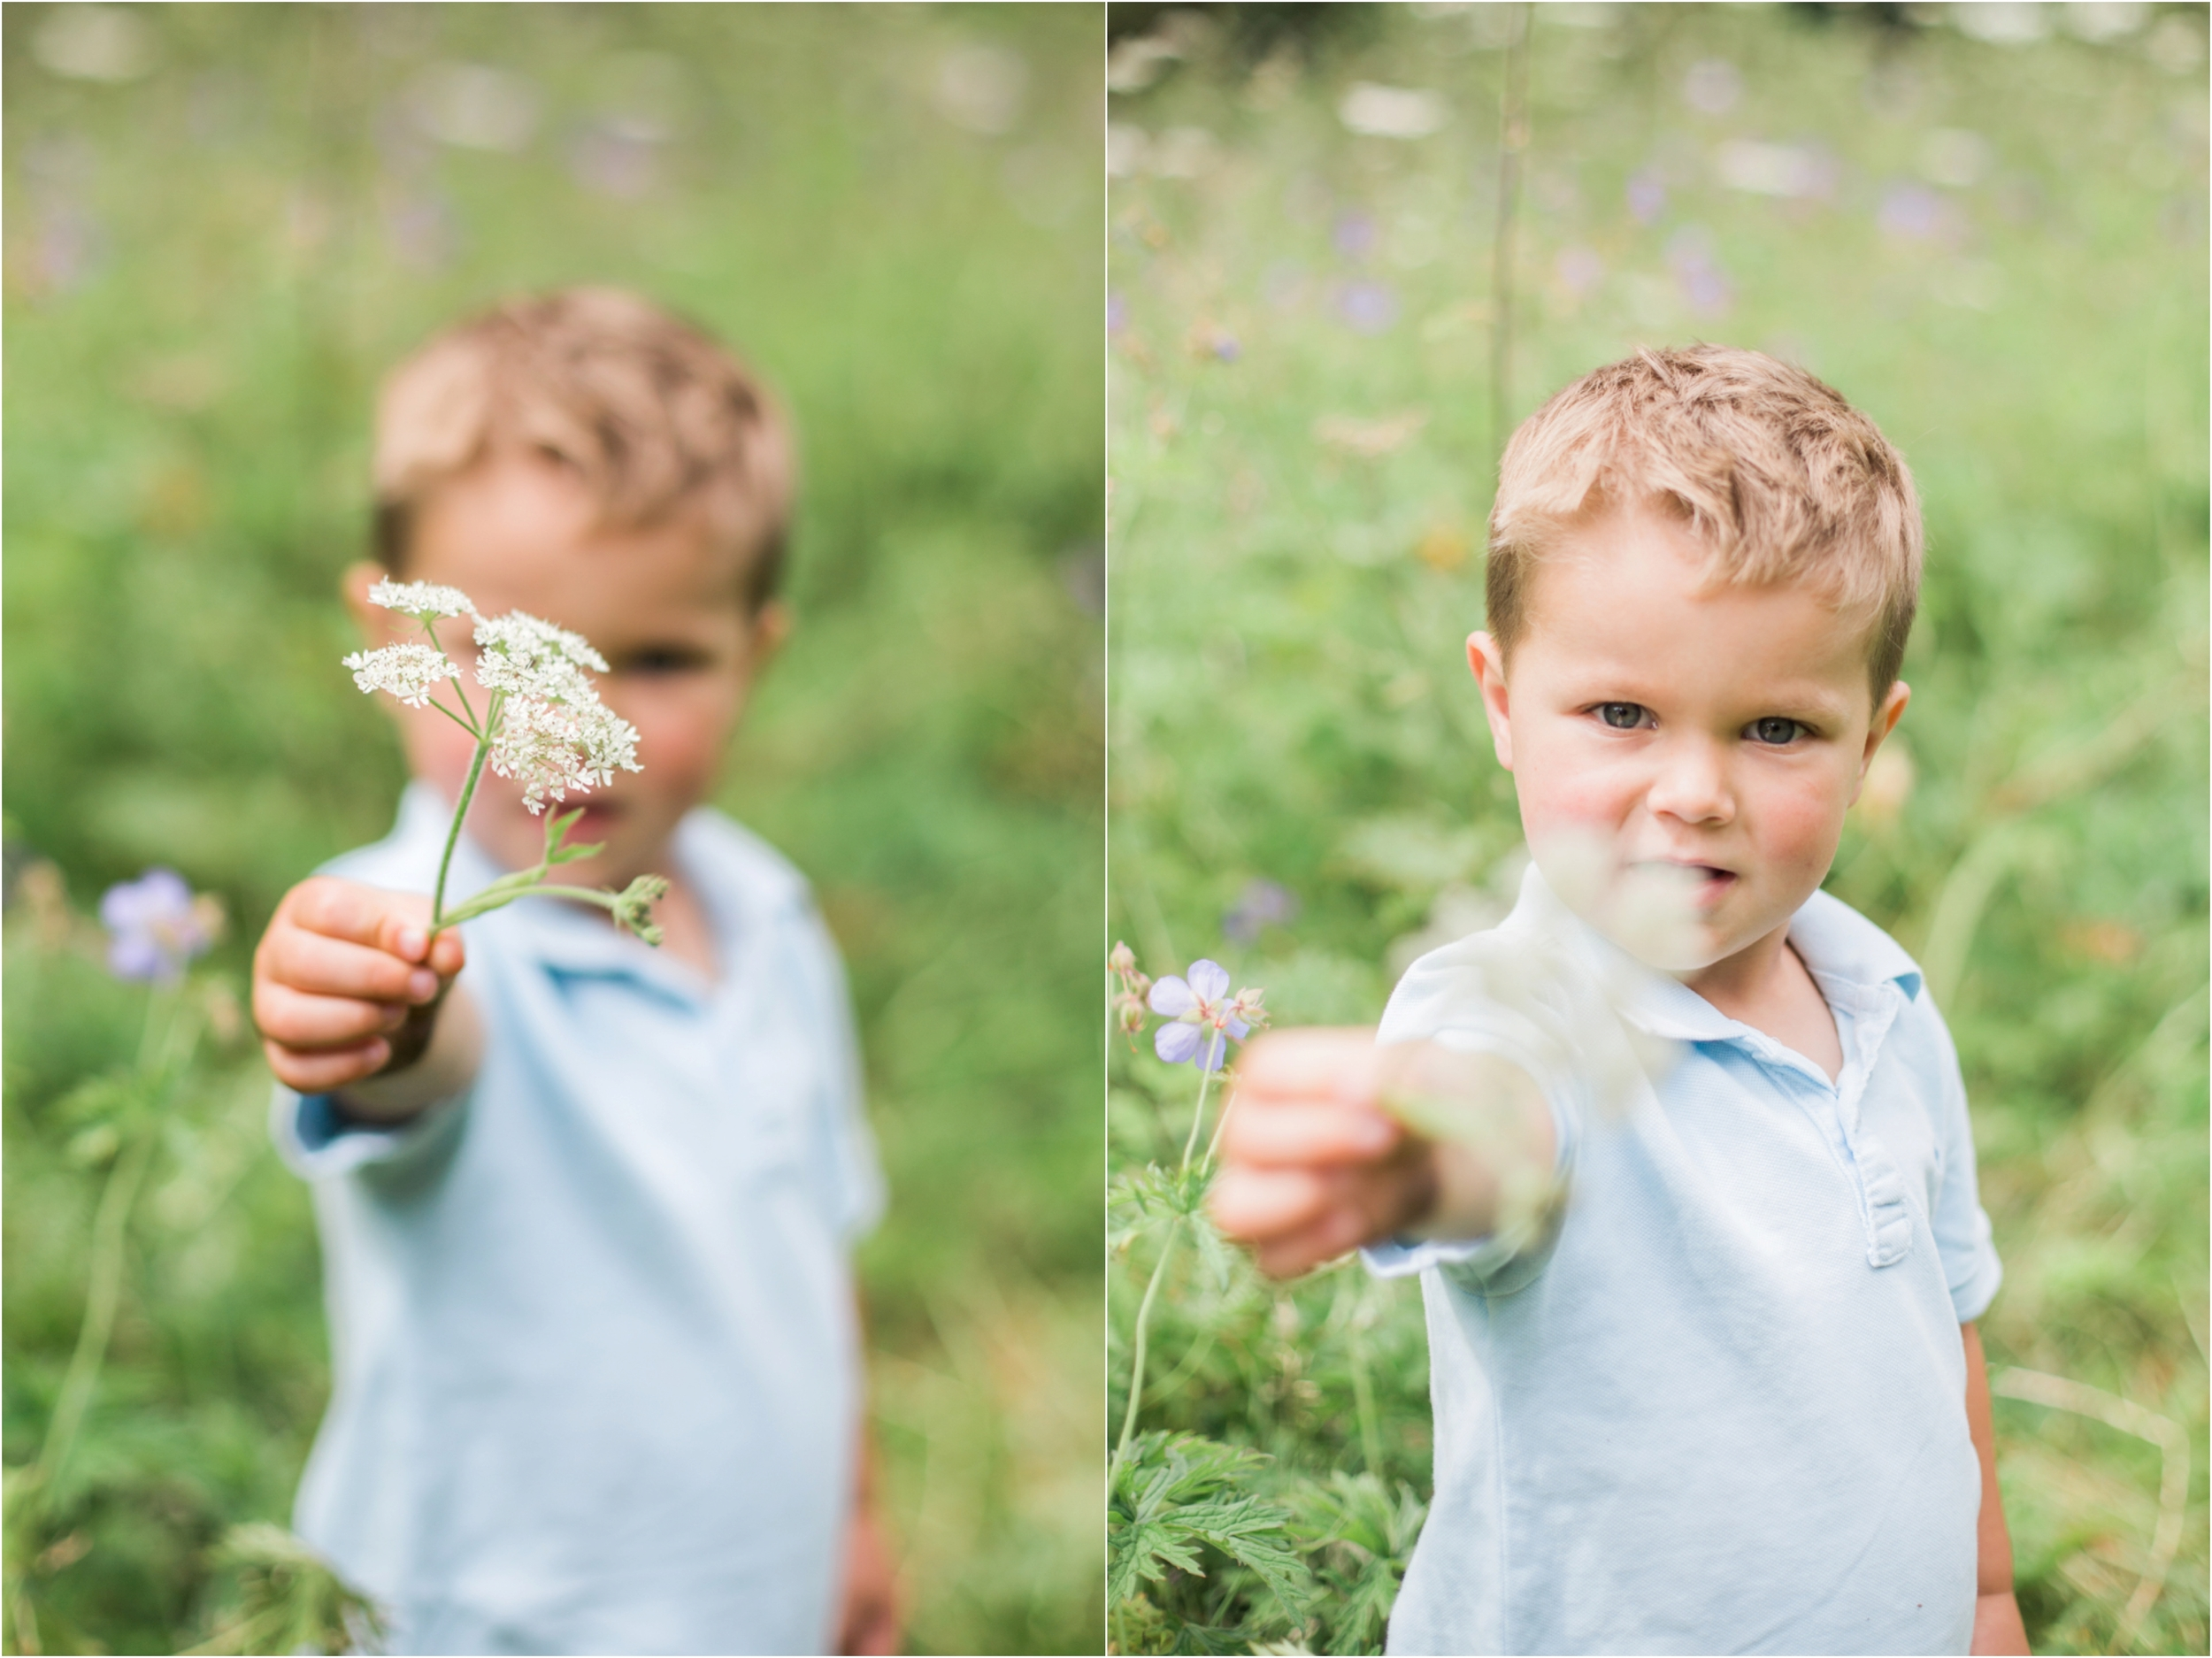 029Sophie Evans Photography, Warwickshire Family Photography, Tailor Family.jpg